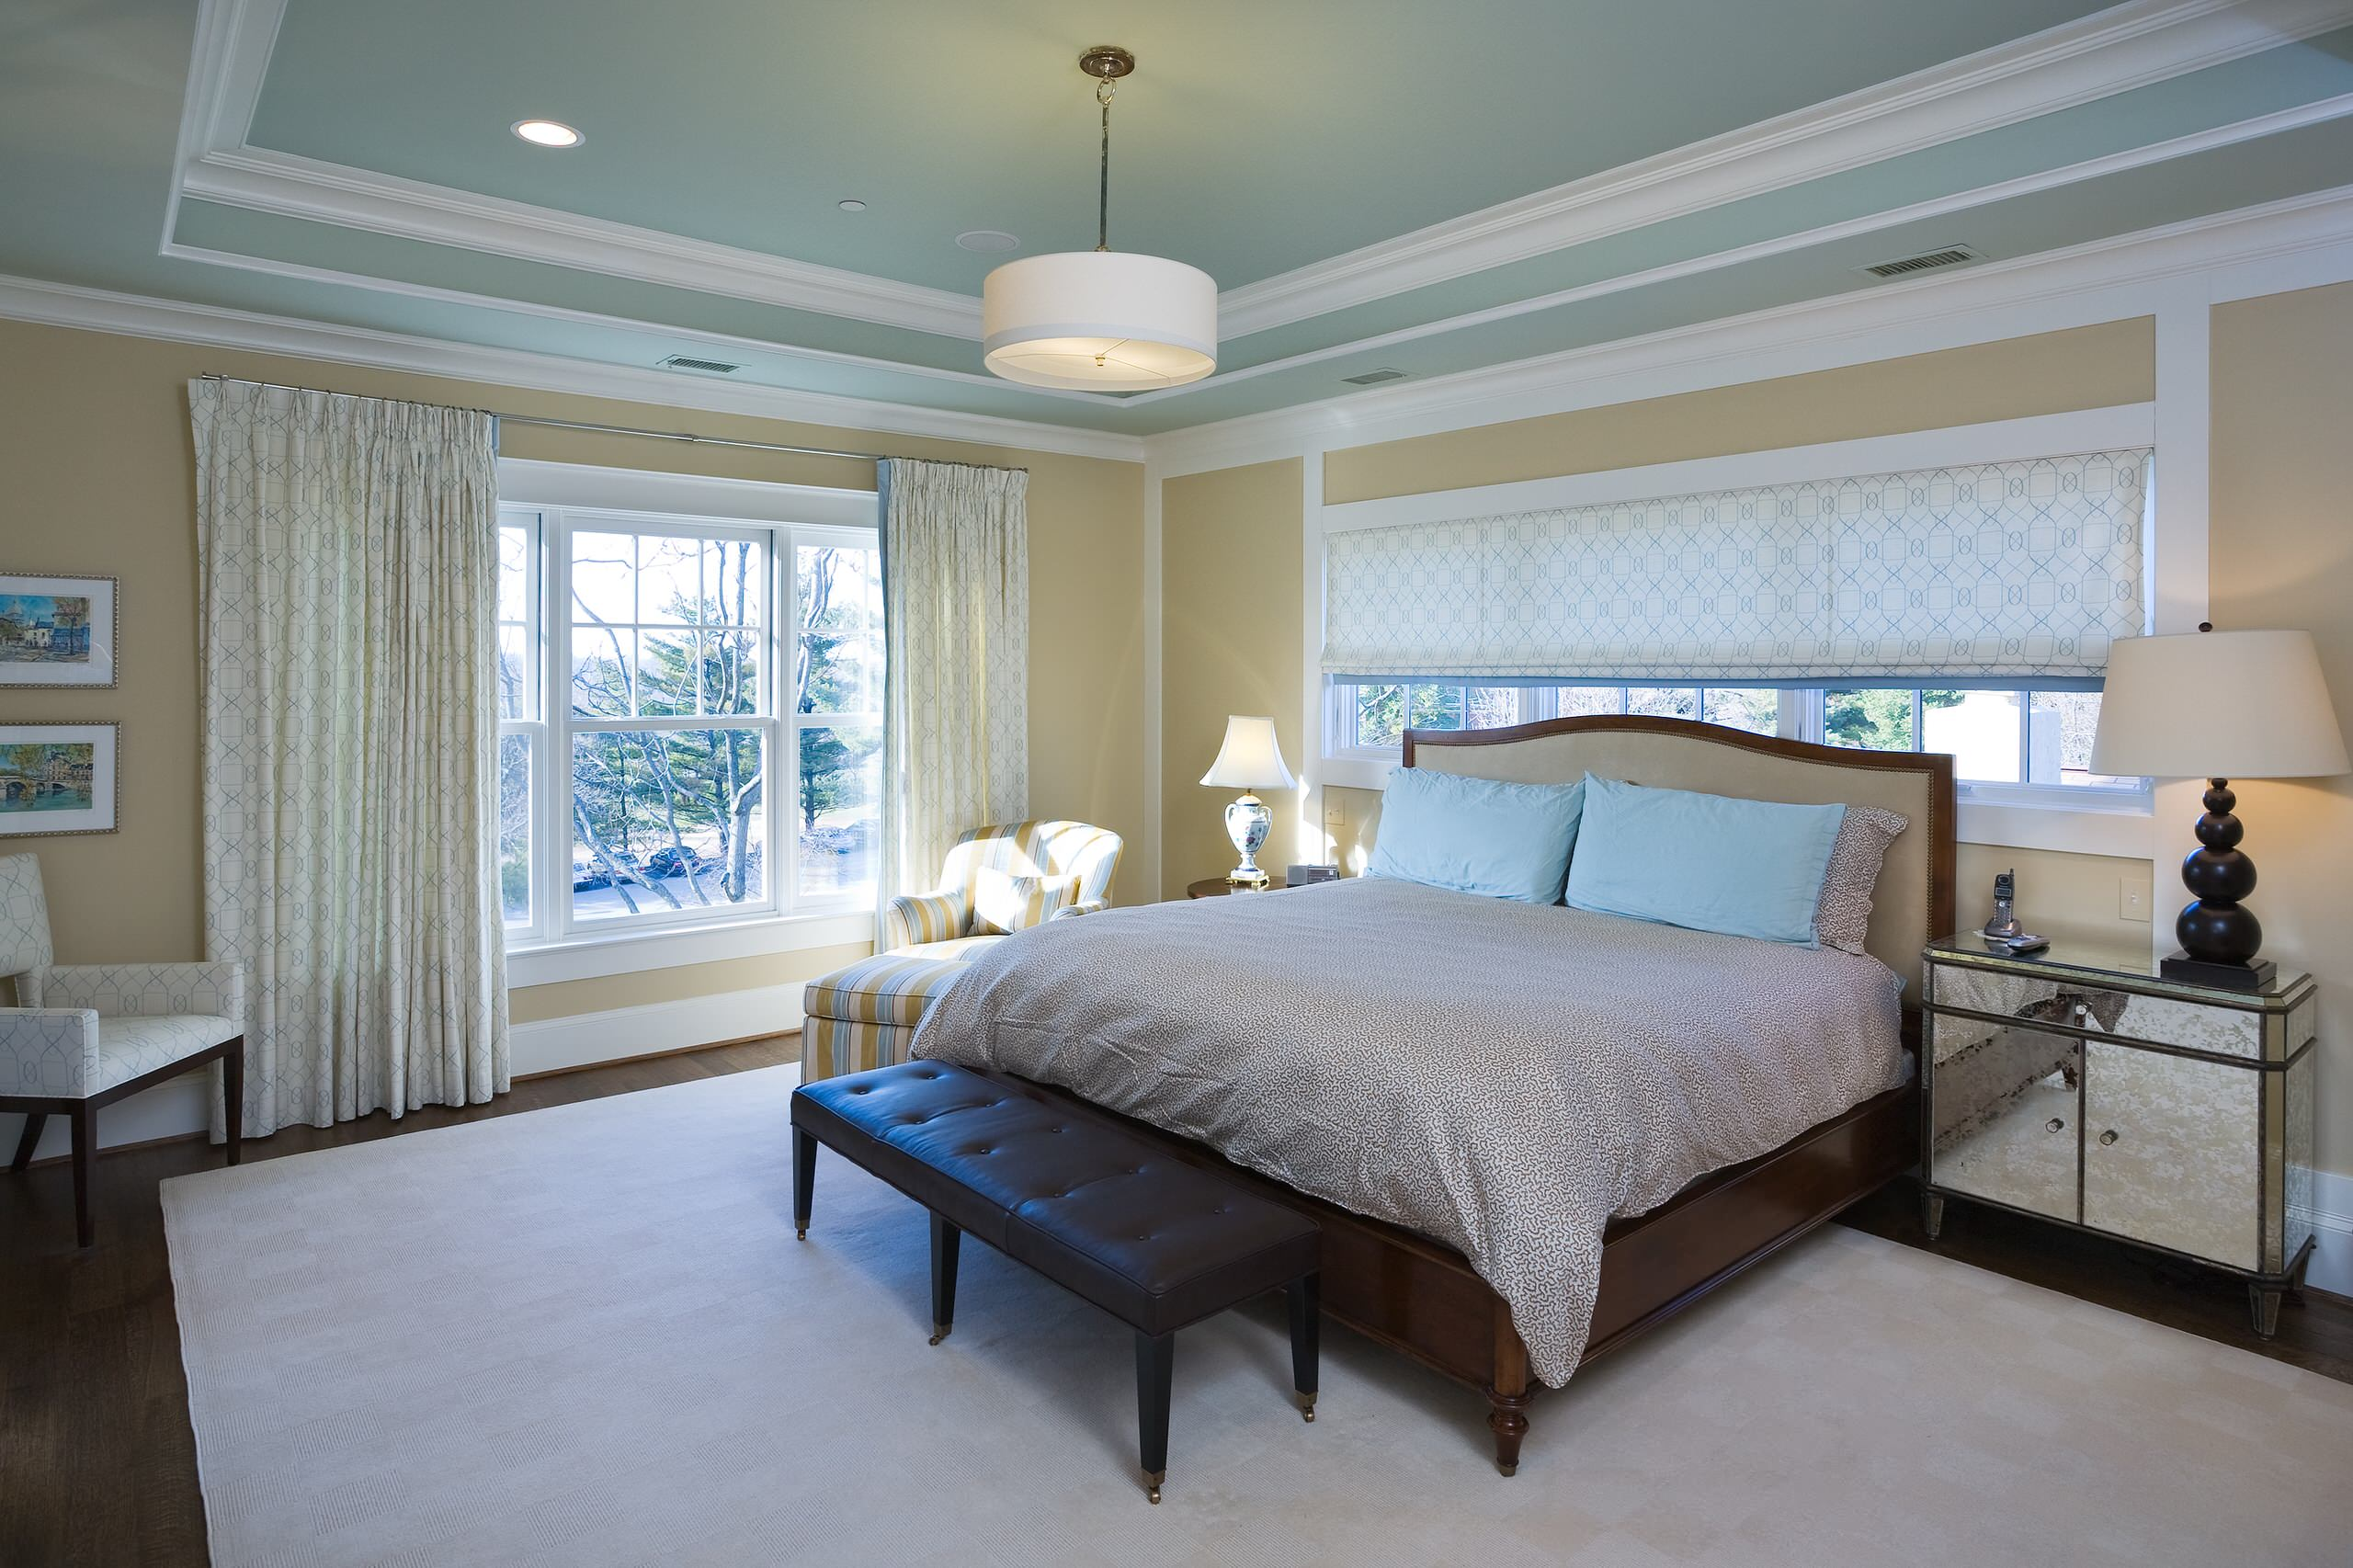 Tray Ceiling Paint Ideas Contemporary Bedroom Leather Bench Pendant Light Curtain Panels Light Blue